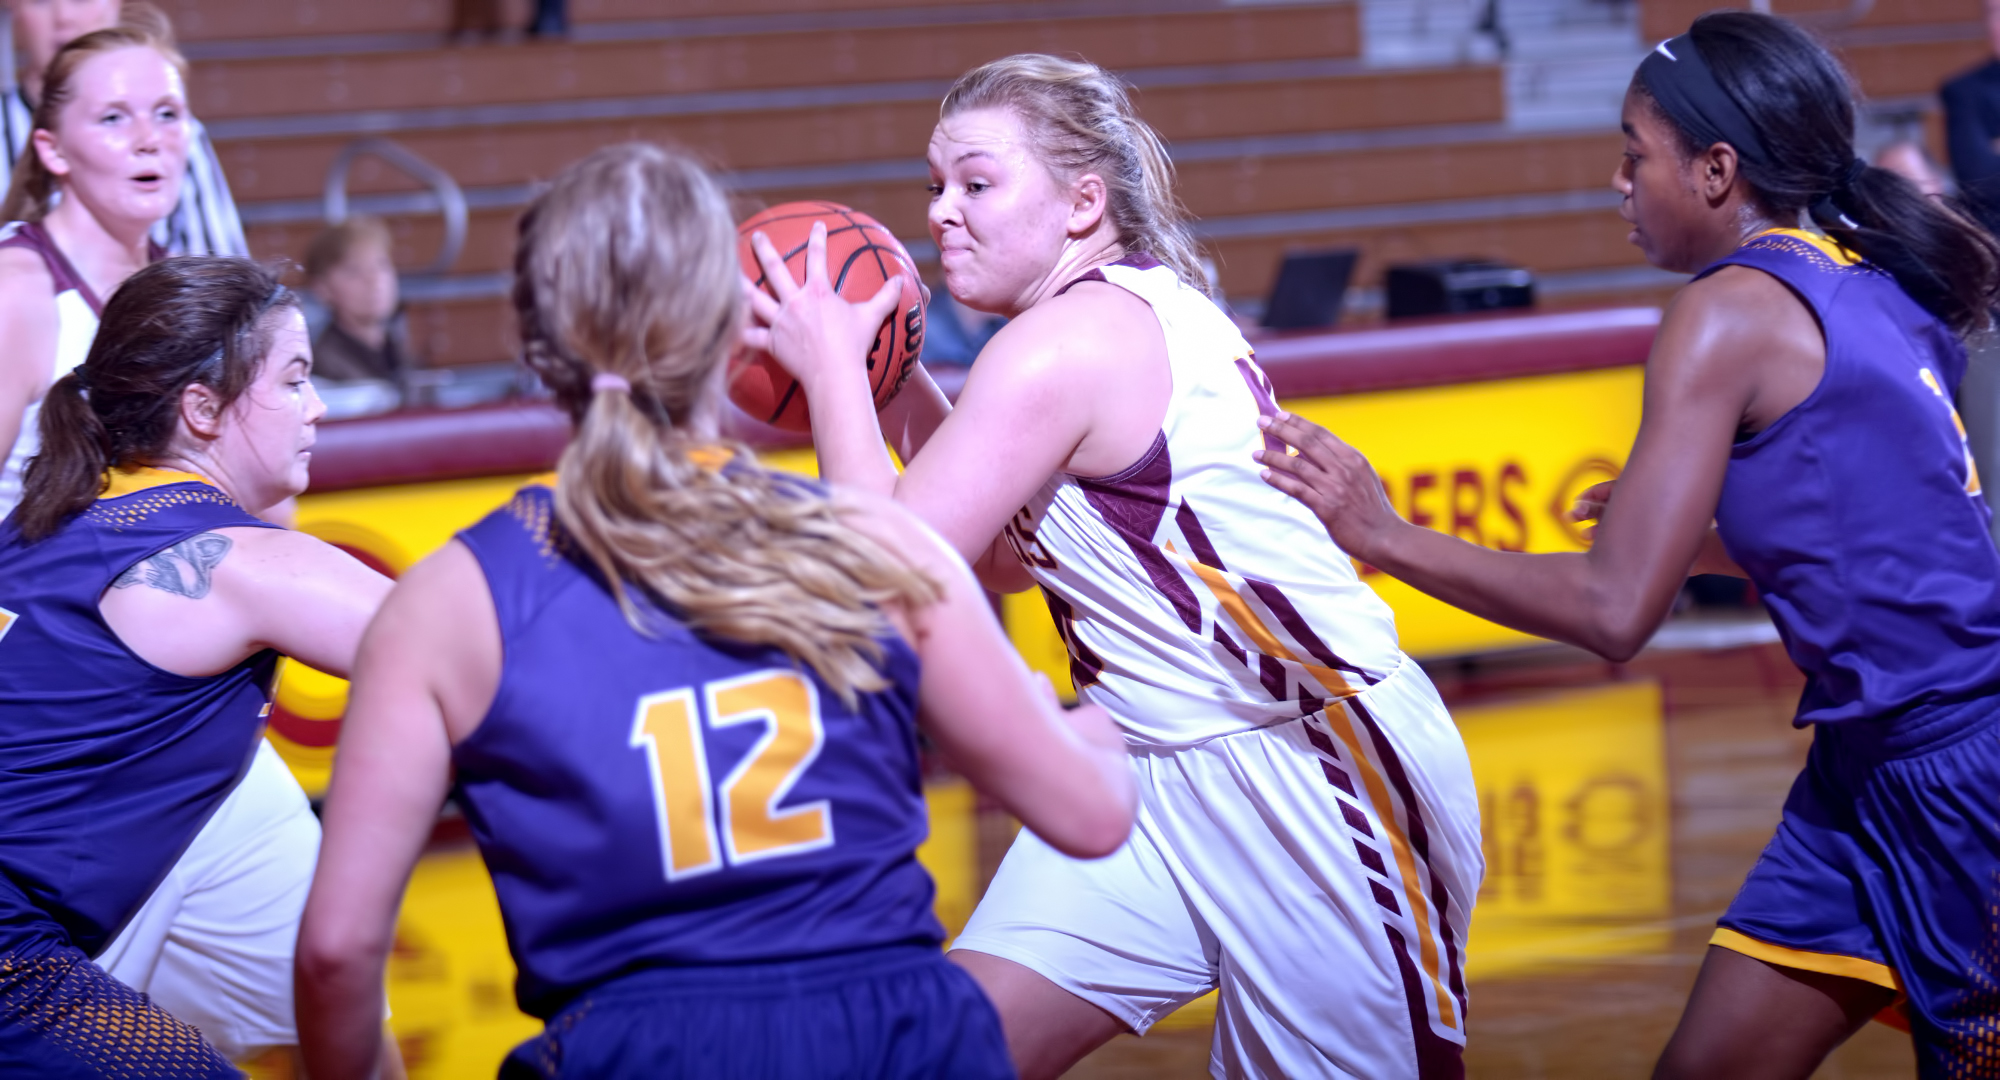 Sophomore Mira Ellefson drives to the basket for a clutch basket in the fourth quarter of the Cobbers' win over St. Catherine.